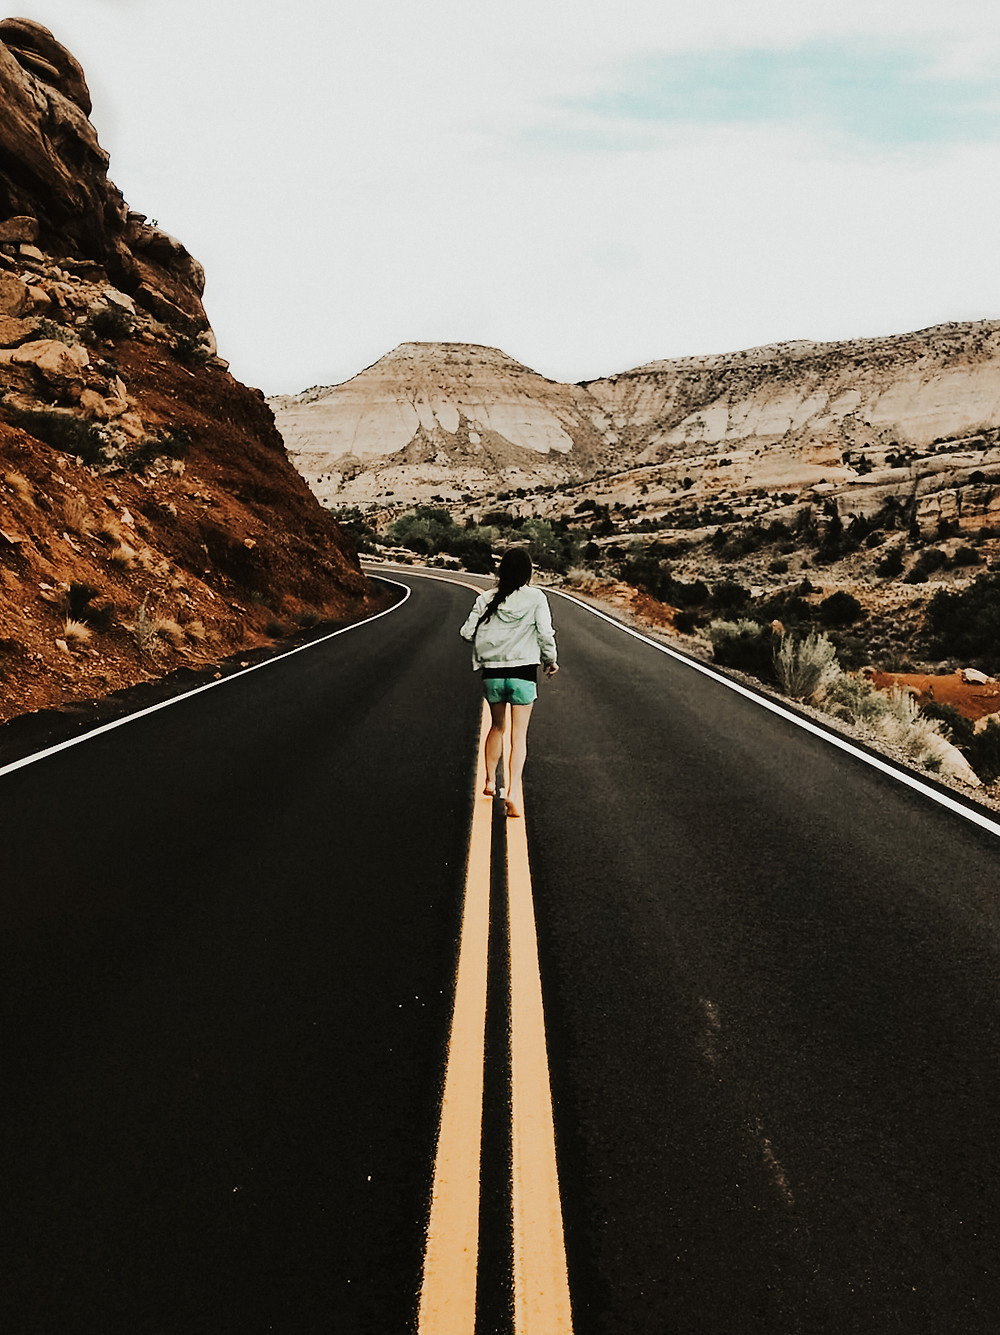 Running on the yellow lines of the winding road through the Colorado National Monument park in Colorado.